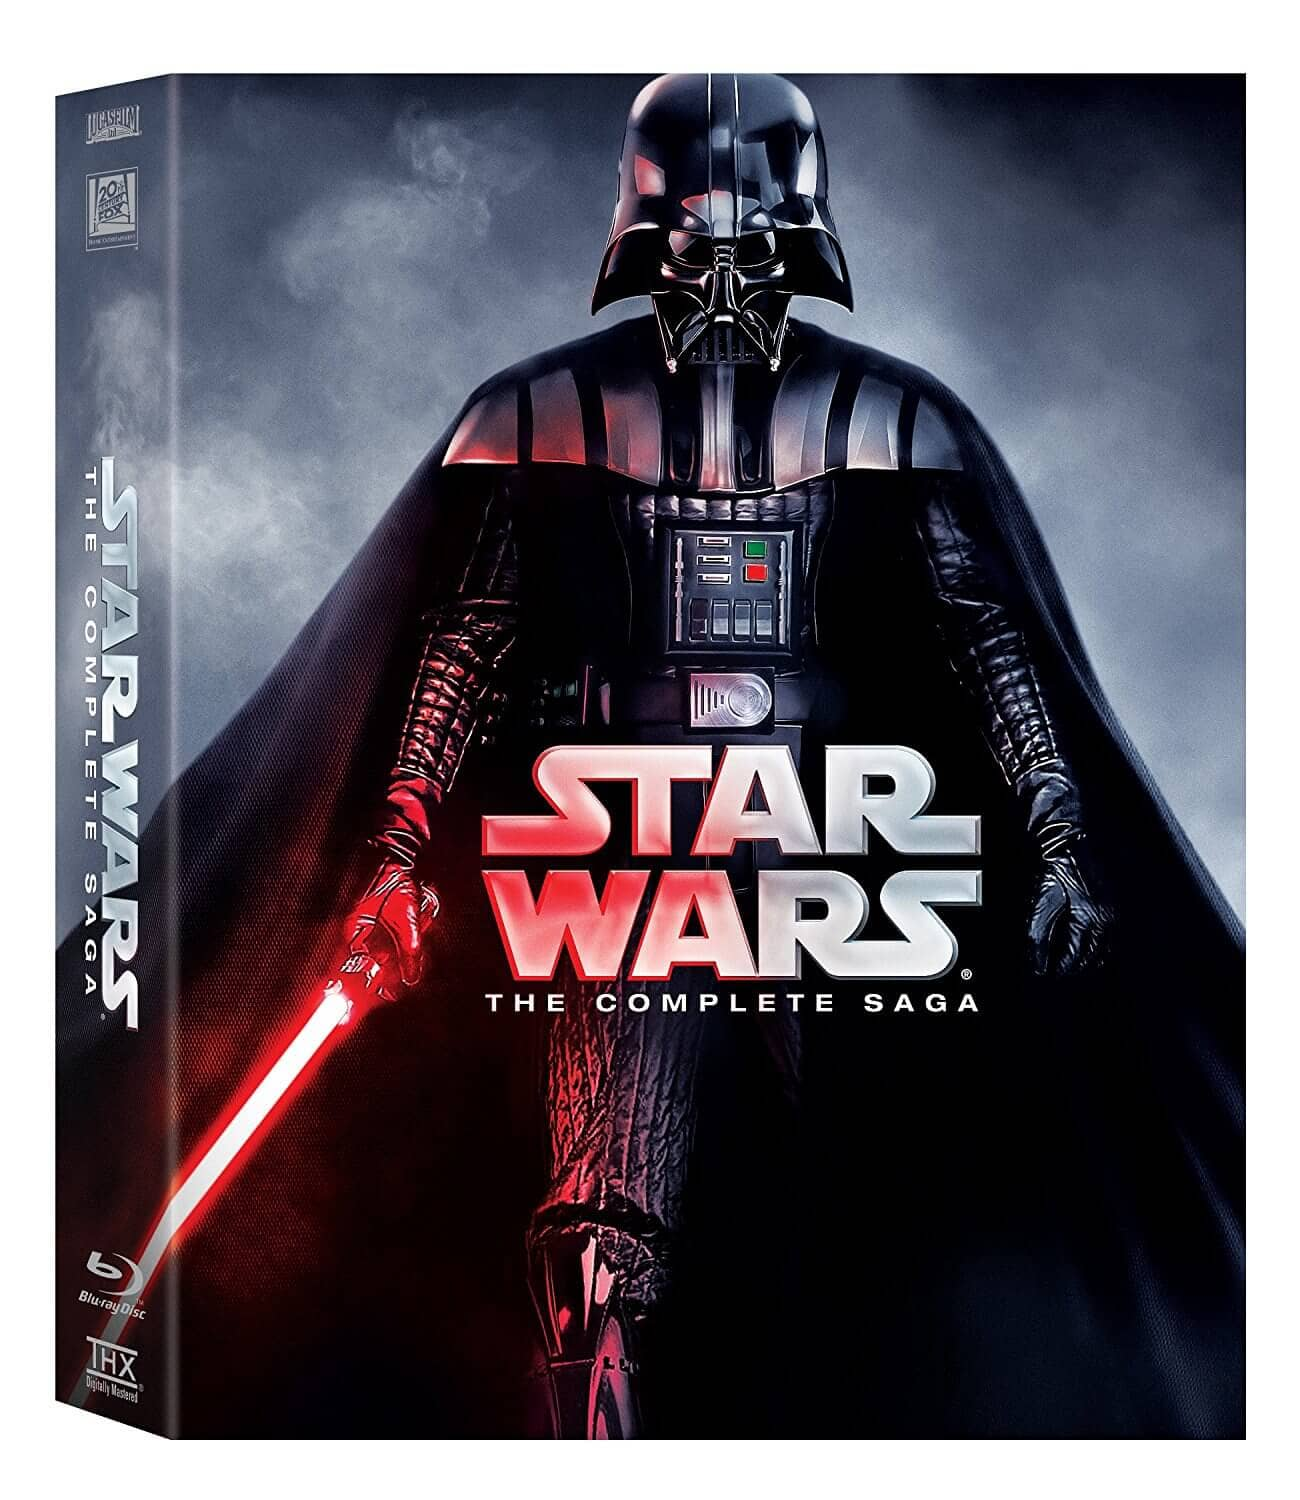 Star Wars: The Complete Saga Blu-Ray